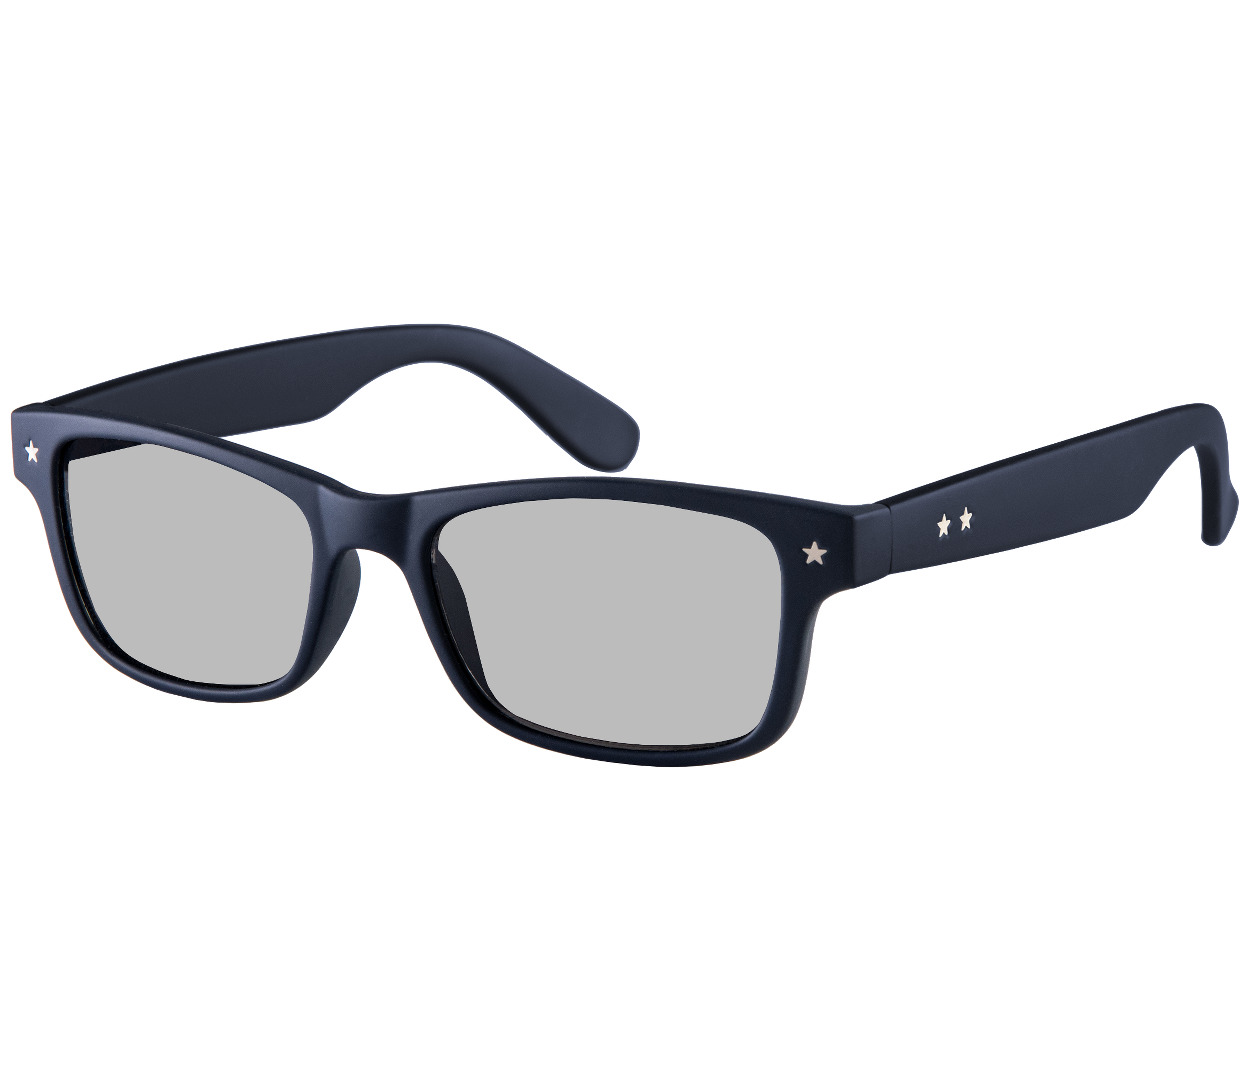 Main Image (Angle) - Lucca (Dark Navy) Retro Sun Readers